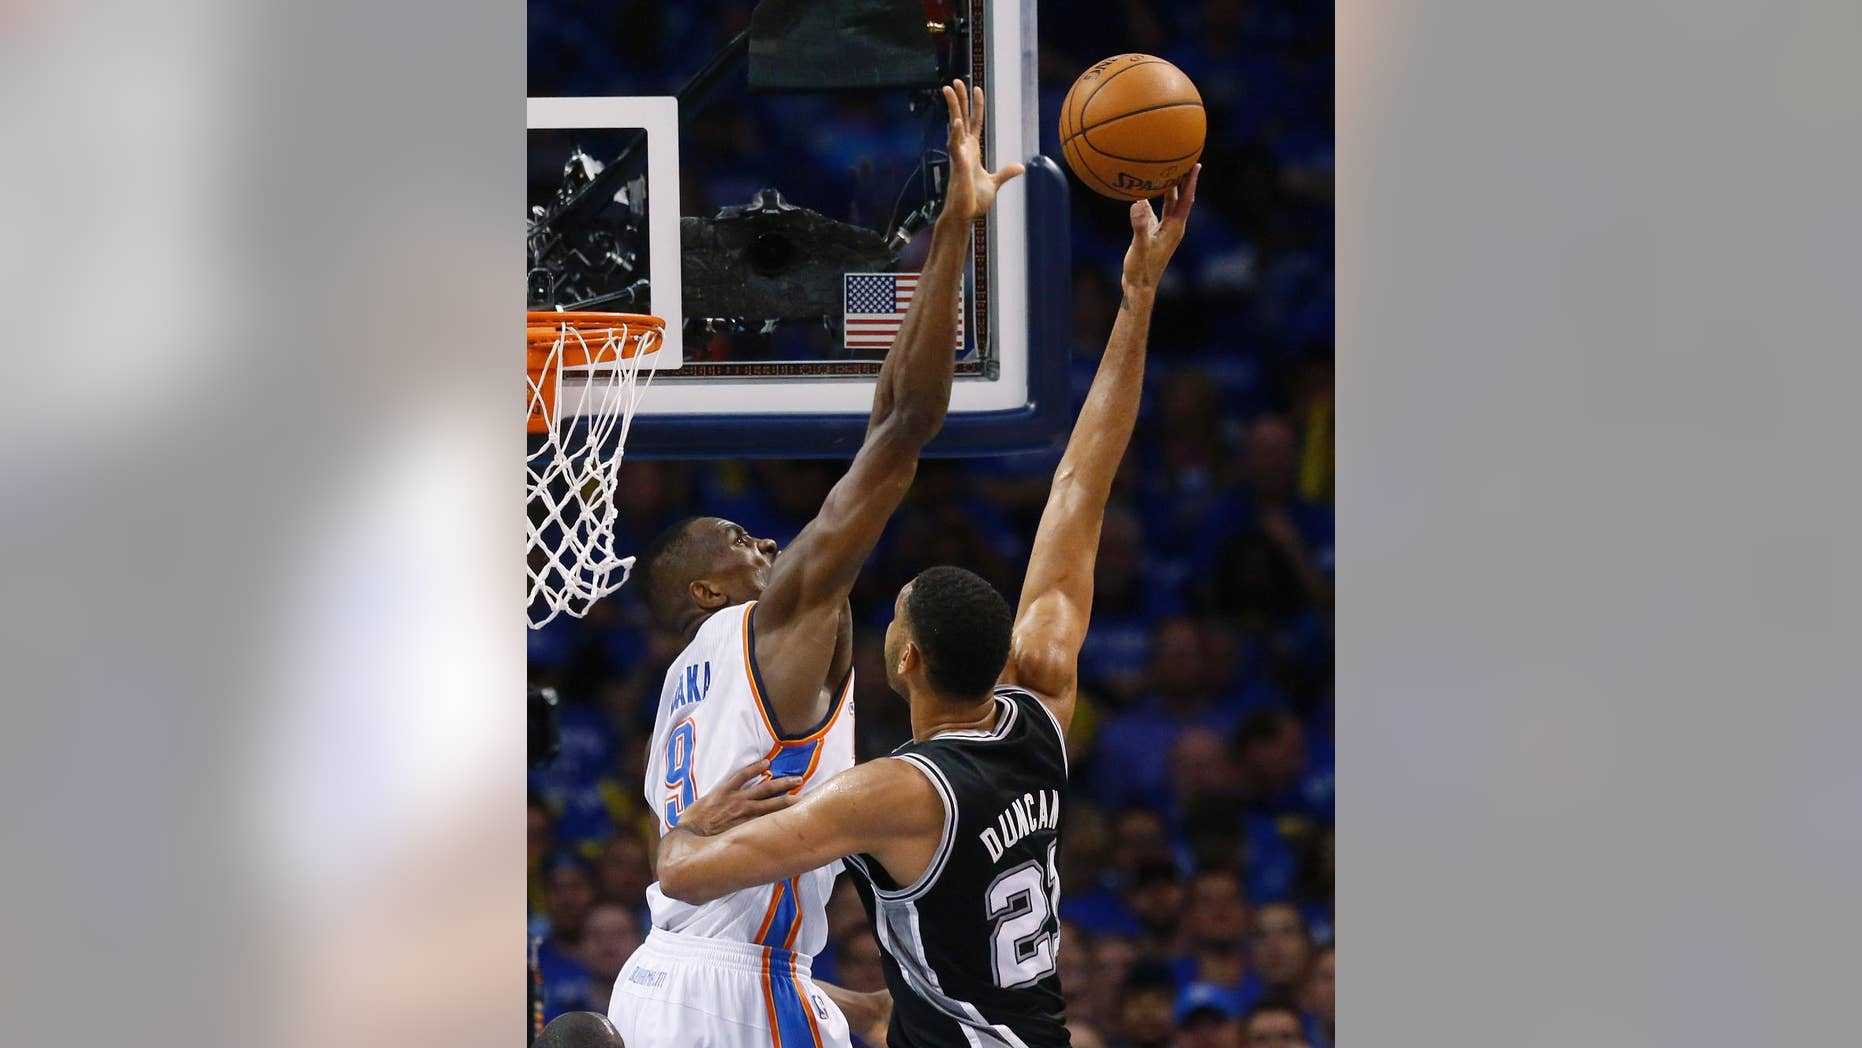 Oklahoma City Thunder forward Serge Ibaka (9) gets up to block a shot by San Antonio Spurs forward Tim Duncan (21) in the first quarter of Game 3 of an NBA basketball playoff series of the Western Conference finals, Sunday, May 25, 2014, in Oklahoma City. (AP Photo/Sue Ogrocki)